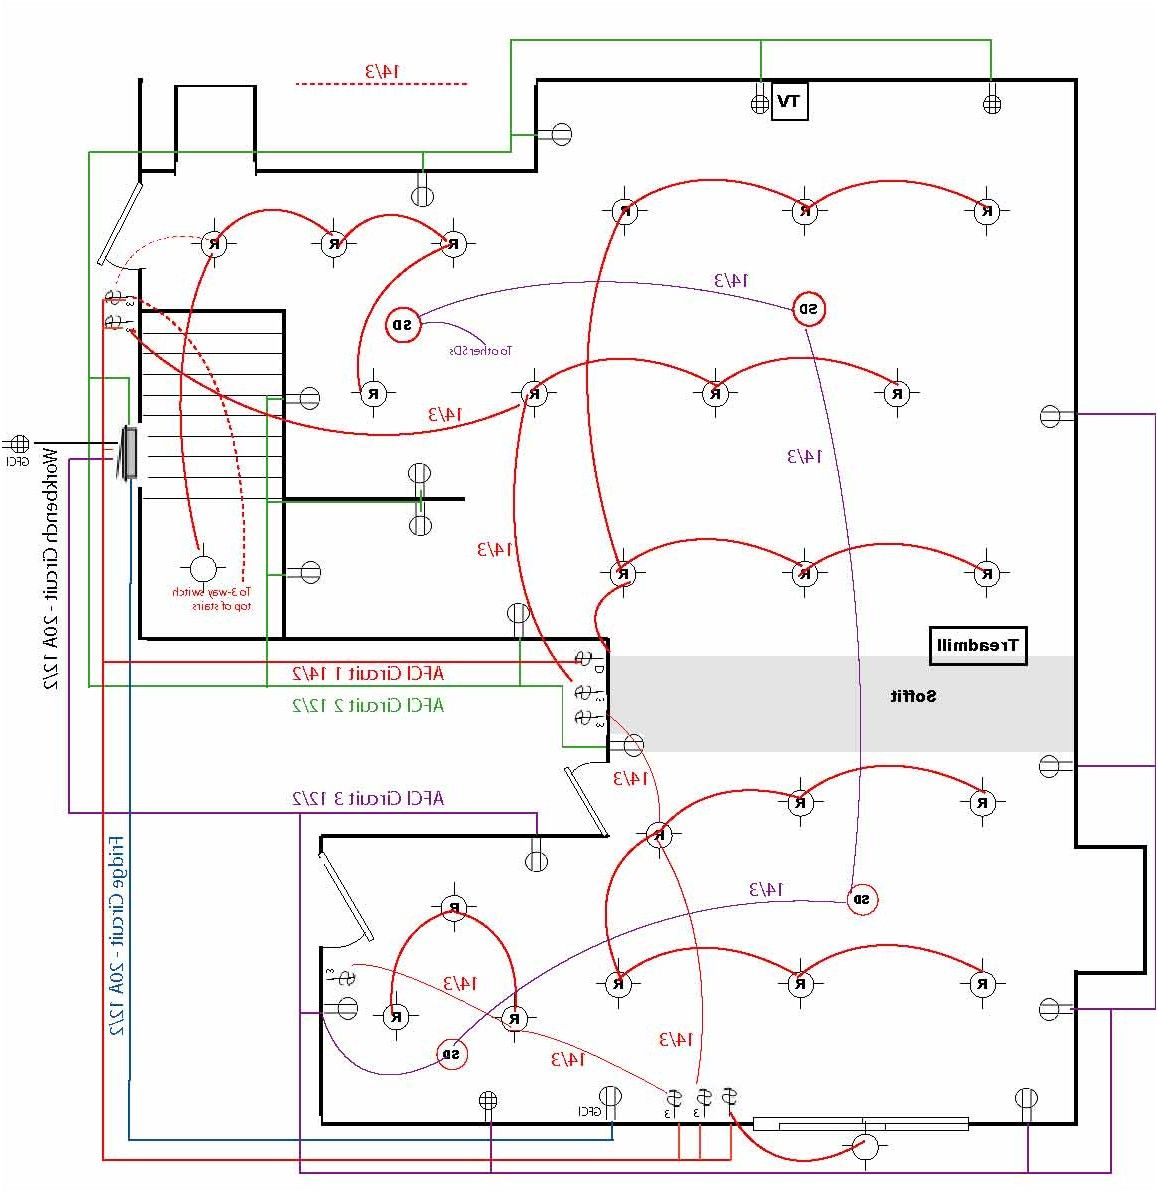 basement wiring diagram review for how to wire a diagram from rh pinterest com Basement Light Wiring Diagram Basic Wiring Diagram